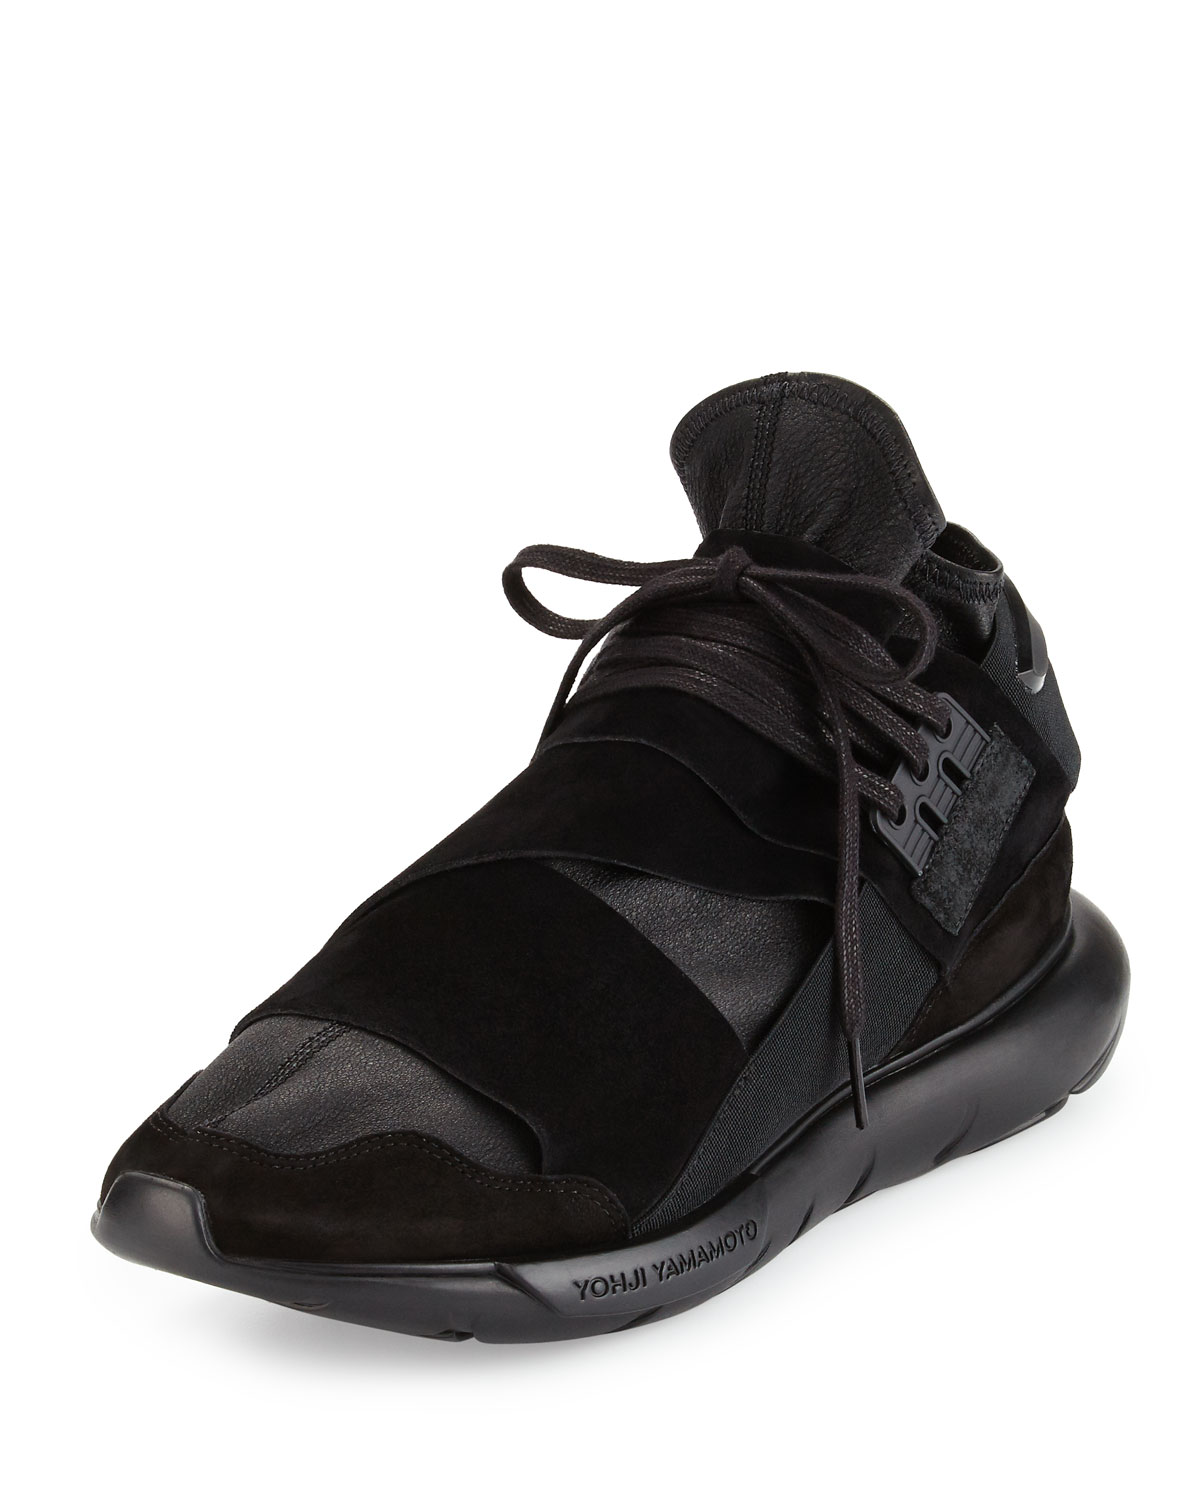 c6ef41cafa128 Y-3 Qasa Men s High-Top Leather Trainer Sneakers